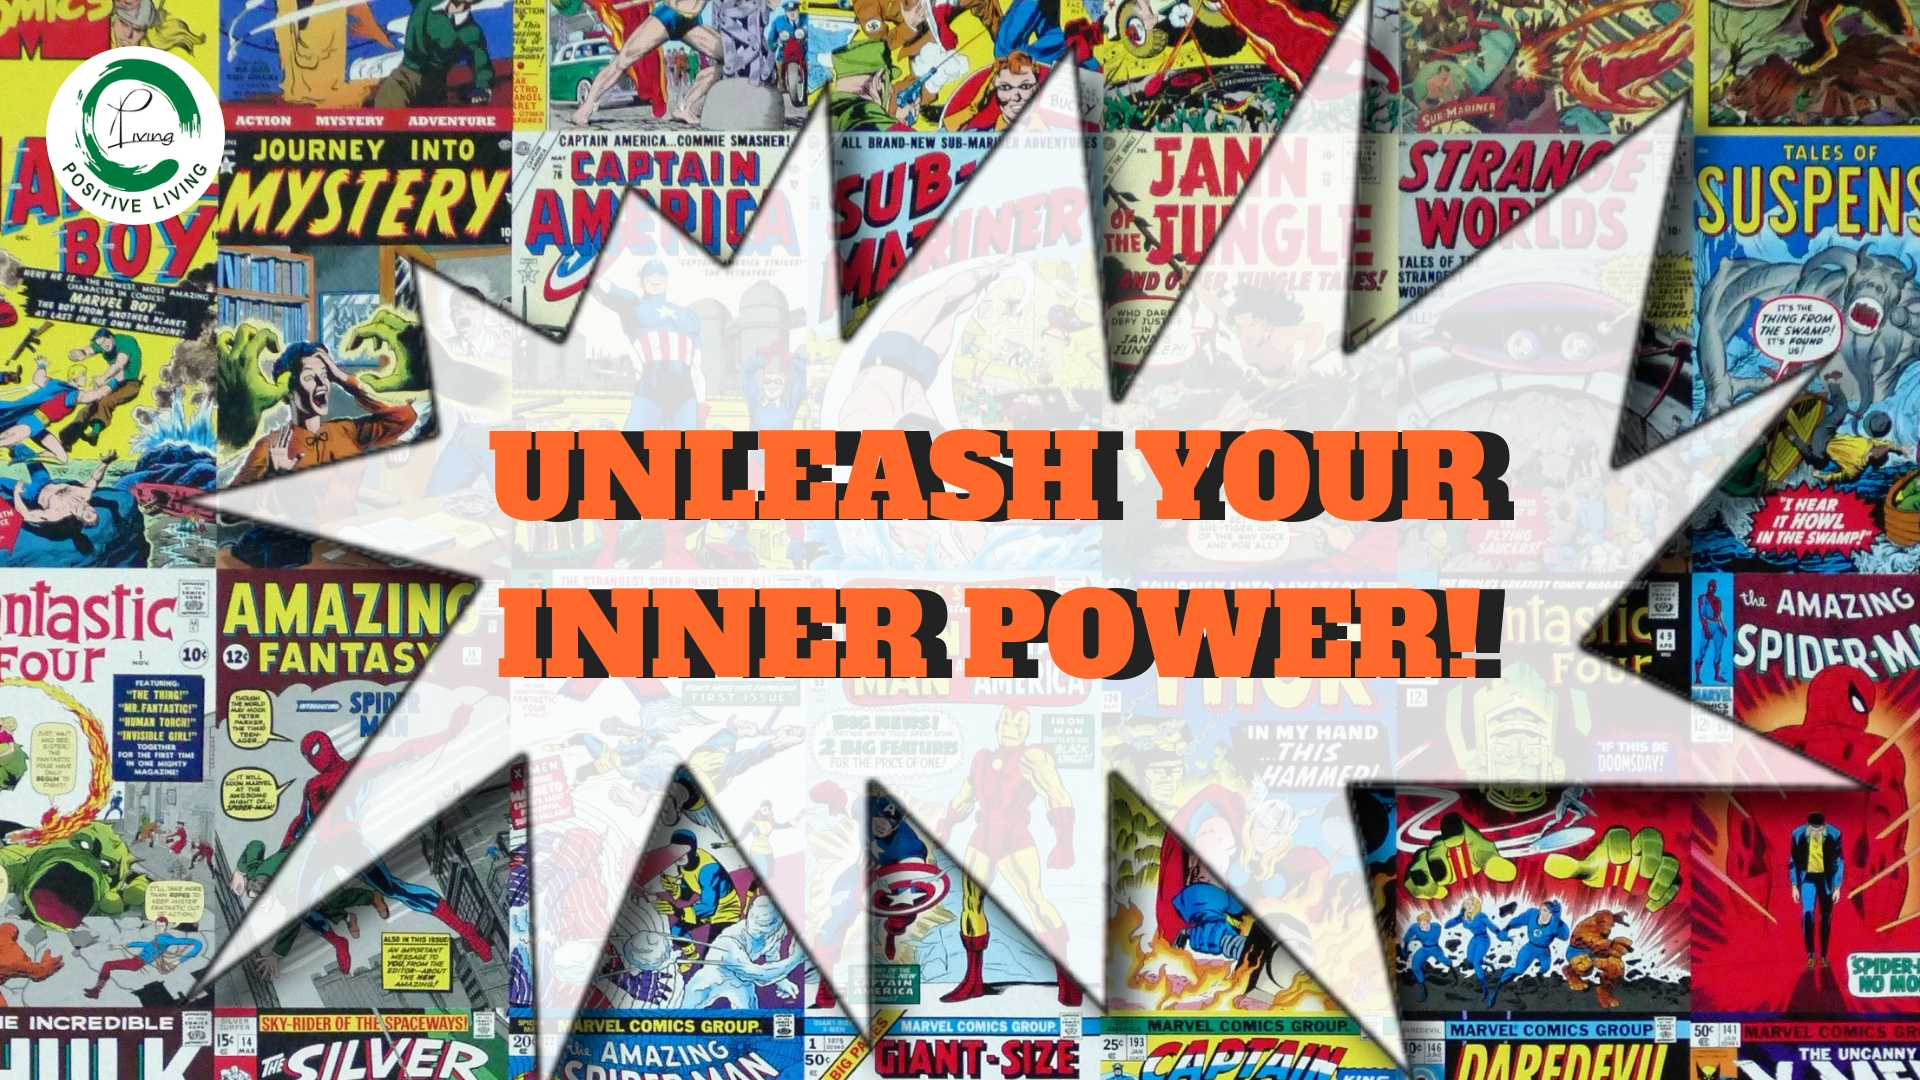 UNLEASH YOUR INNER POWER!